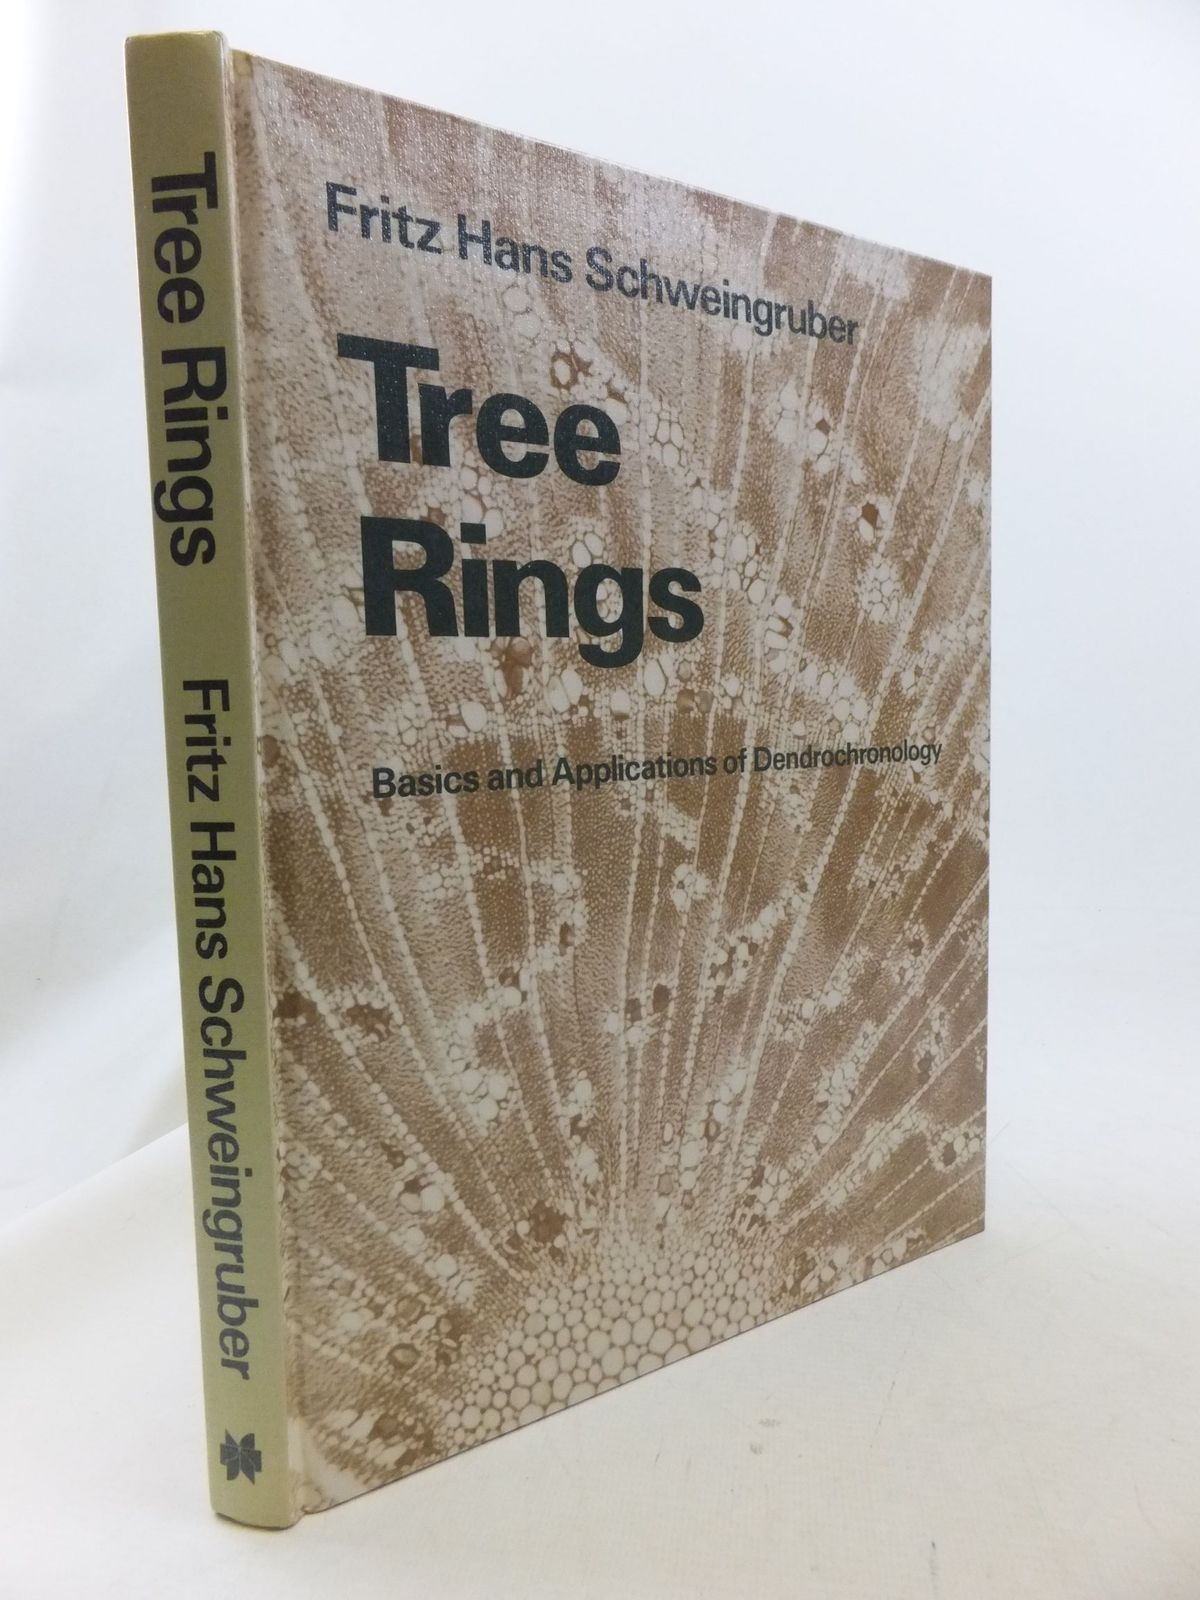 Photo of TREE RINGS BASICS AND APPLICATIONS OF DENDROCHRONOLOGY written by Schweingruber, Fritz Hans published by Kluwer Academic Publishers (STOCK CODE: 1710987)  for sale by Stella & Rose's Books